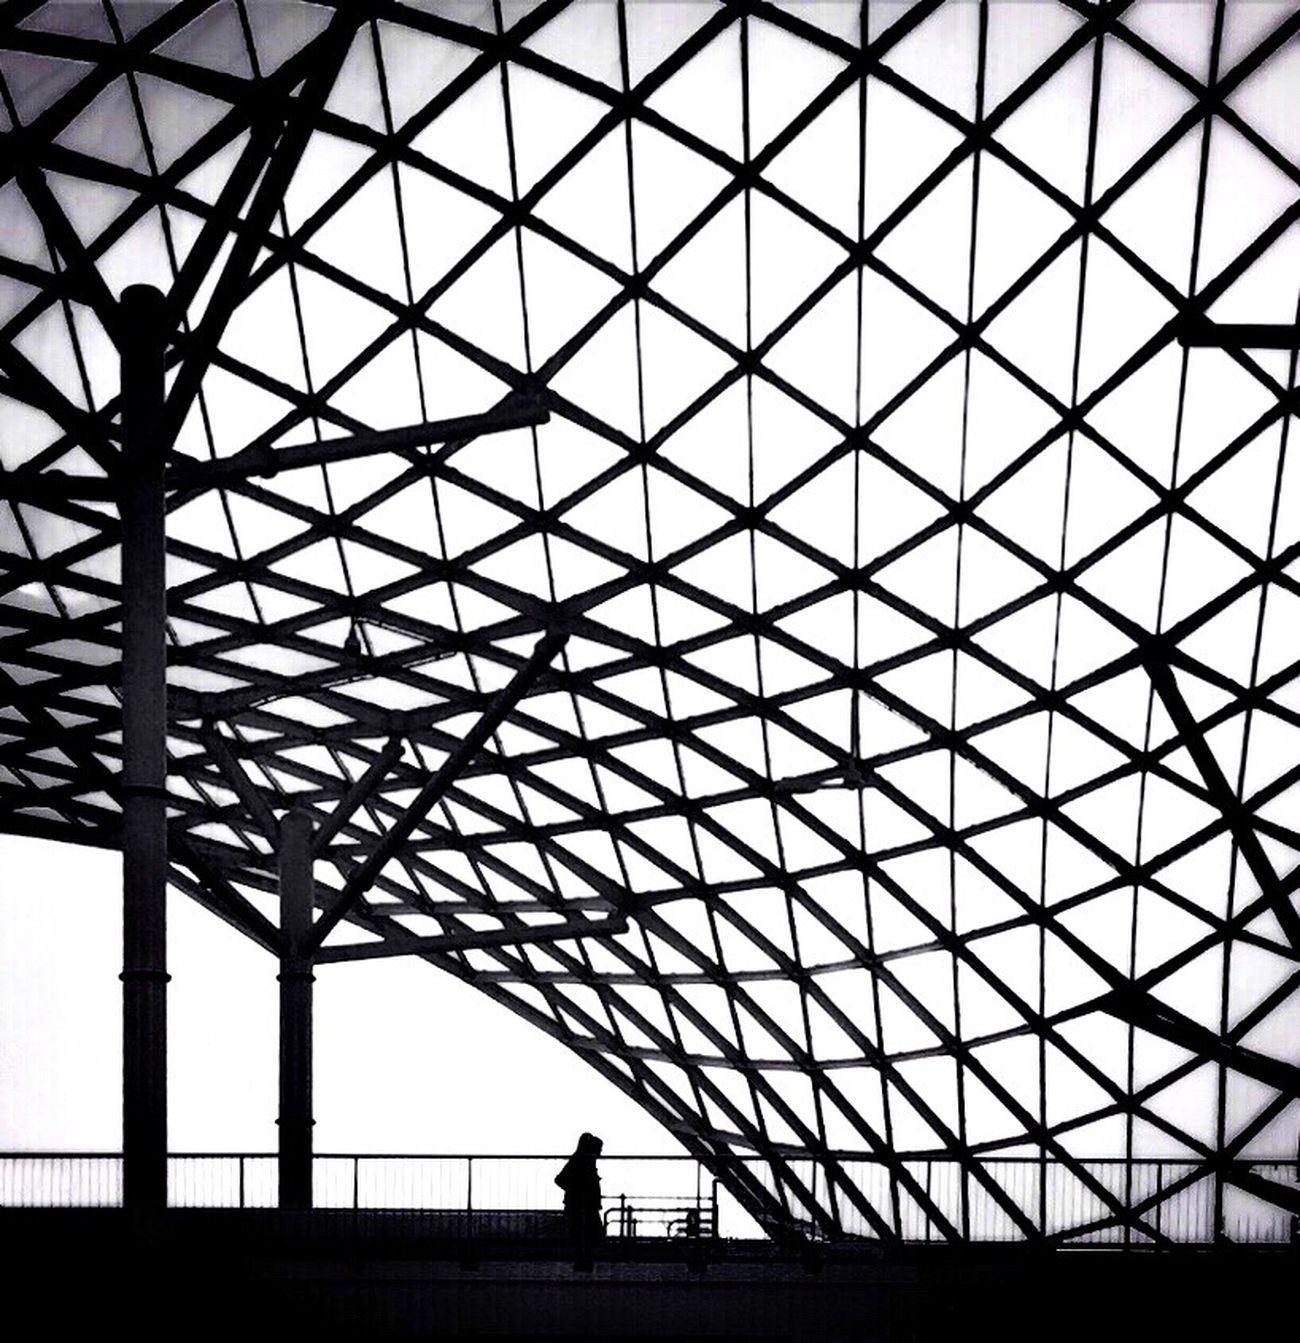 Fieramilano Blackandwhite Architecture Roof Streetphotography From My Point Of View IPhoneography EyeEm Milano Urban Geometry Silhouettes B&w Street Photography